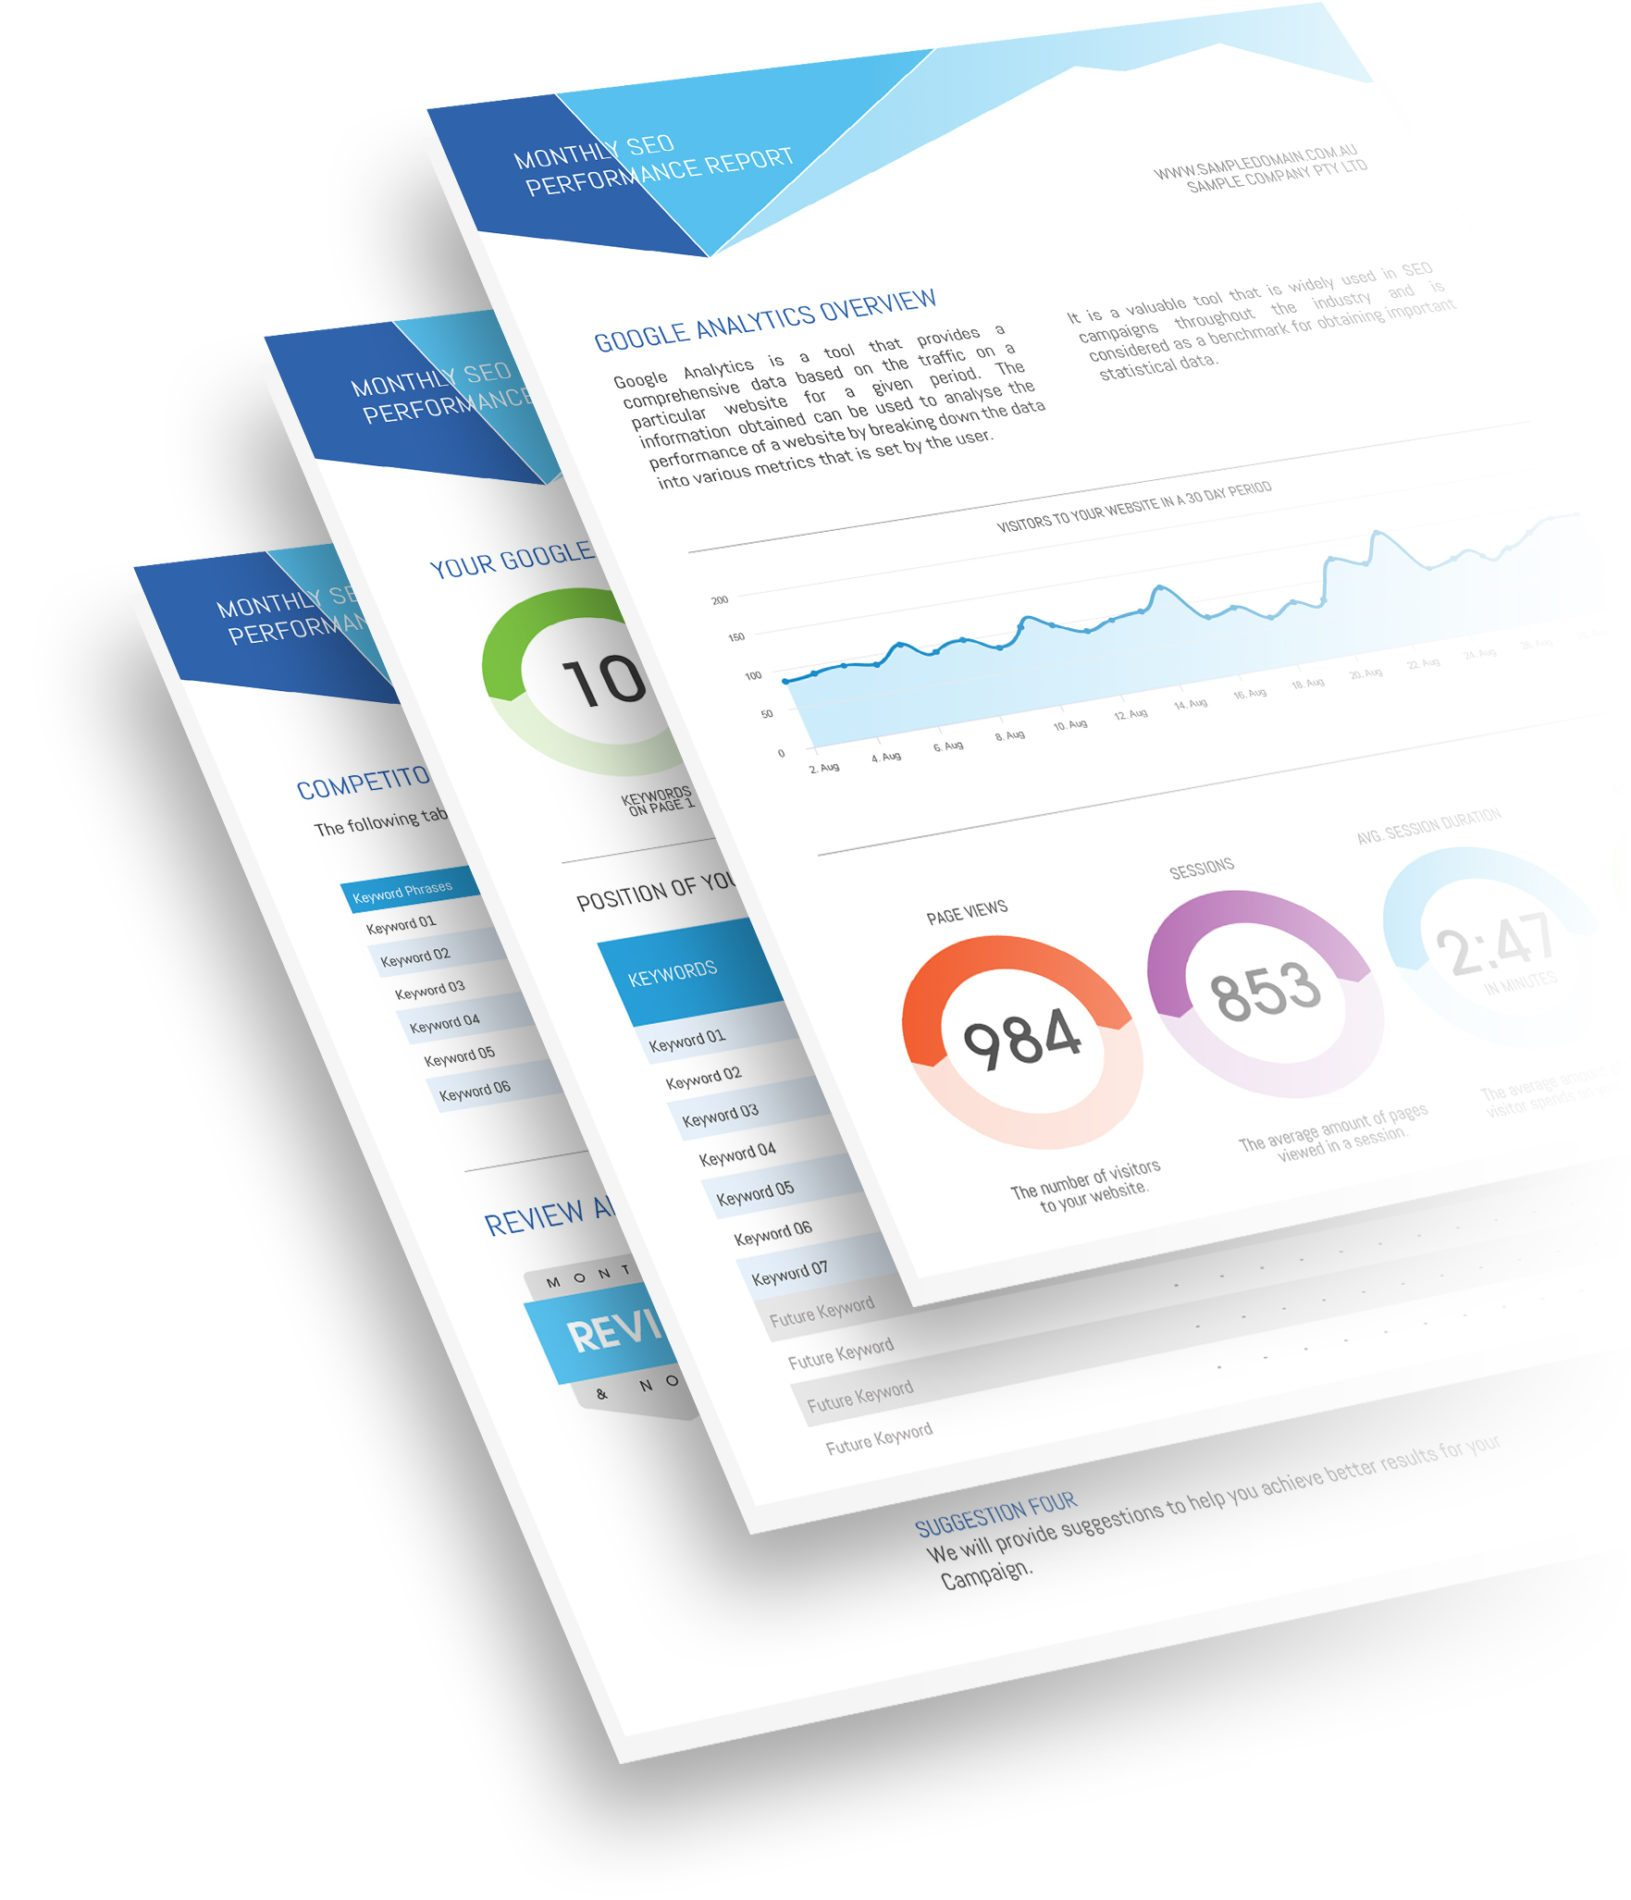 Sample SEO Reports - Cronulla Web Design